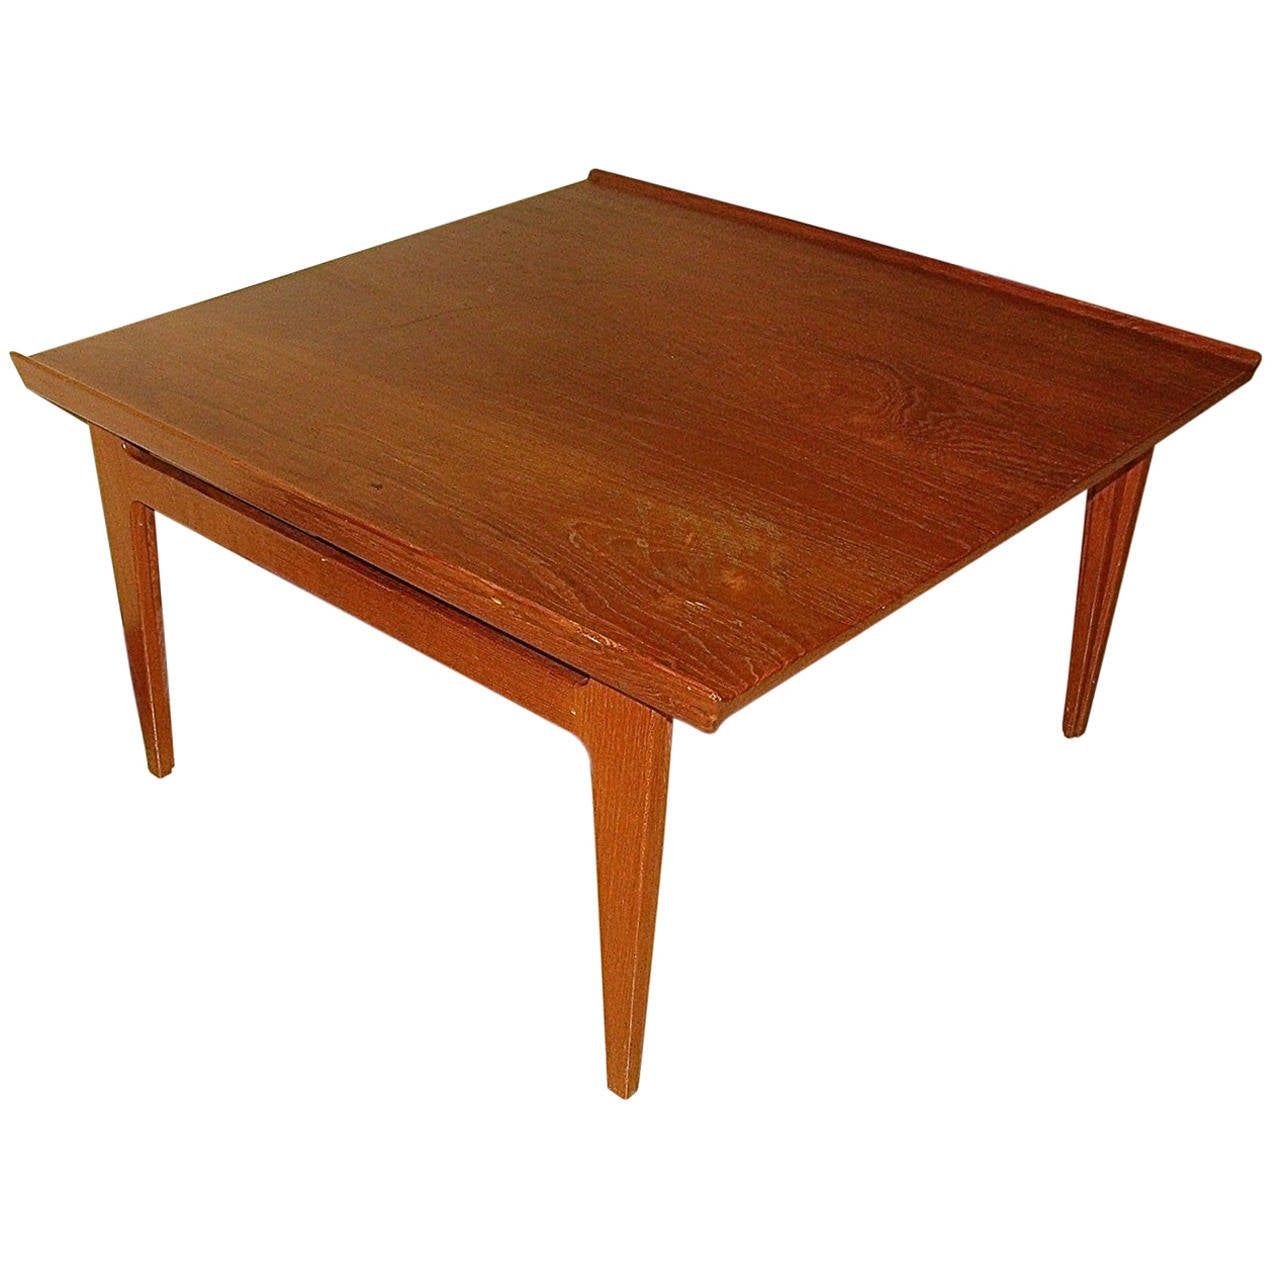 Finn Juhl Danish Modern Mid-Century Coffee Table At 1stdibs